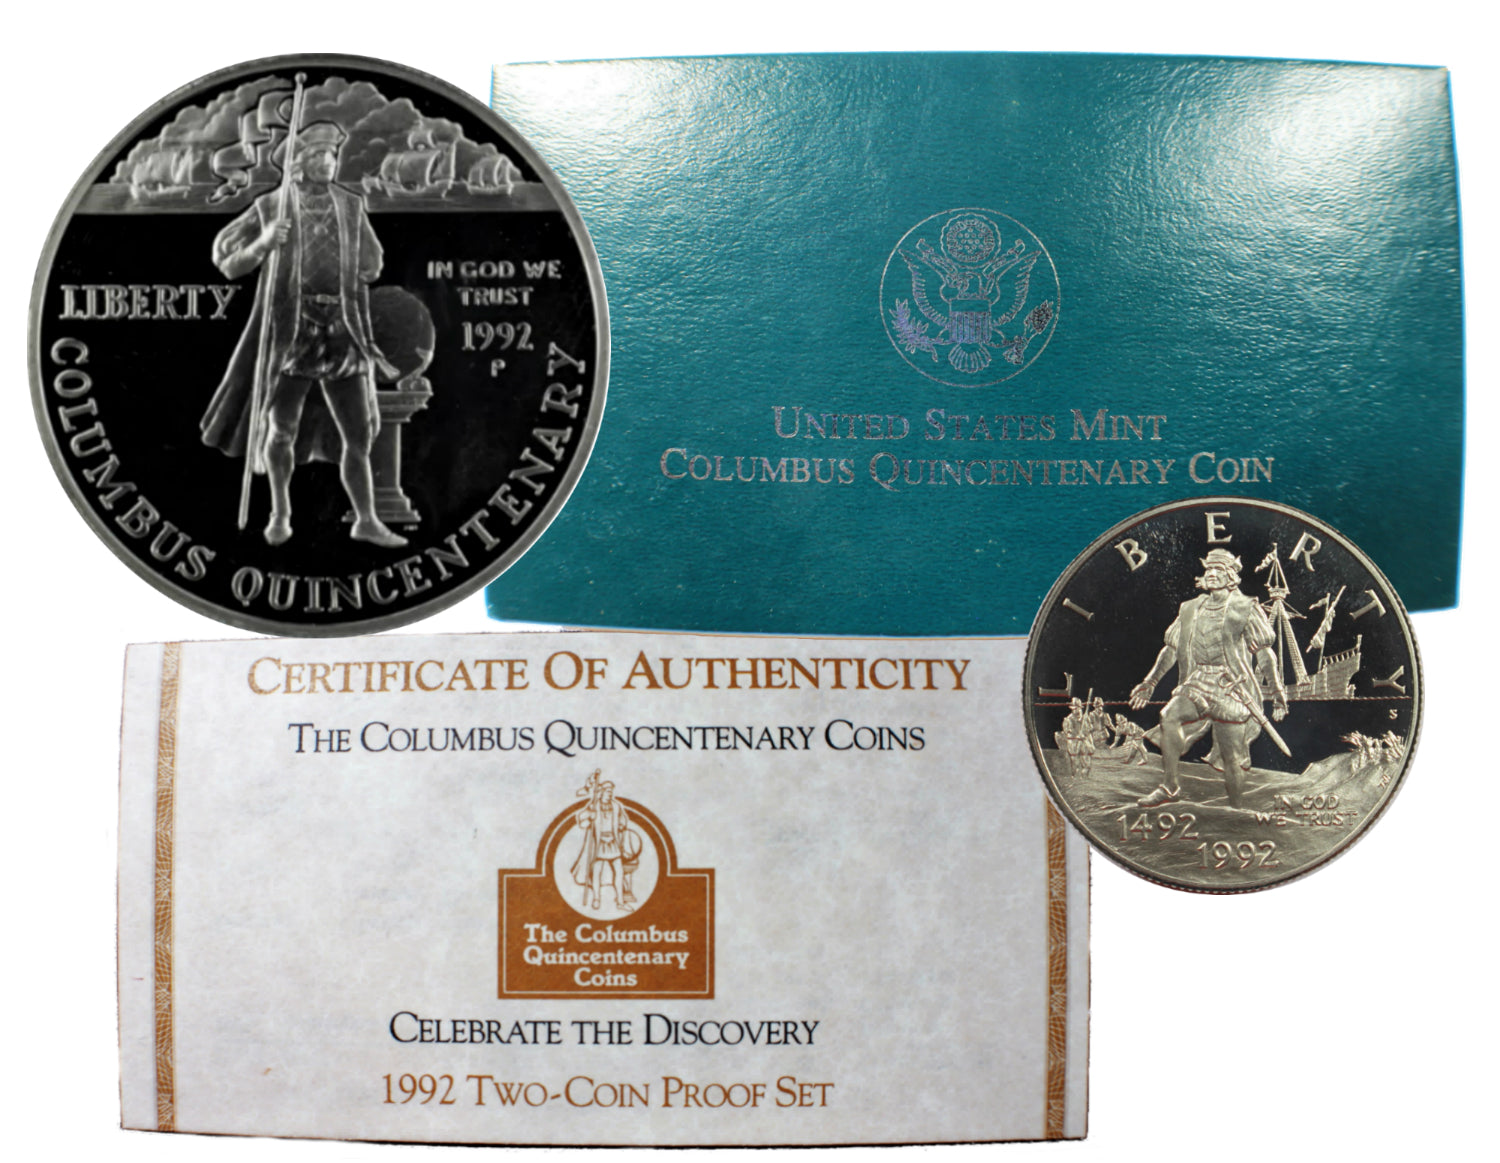 1992 Columbus Commemorative Silver Dollar 2-Coin Set Proof